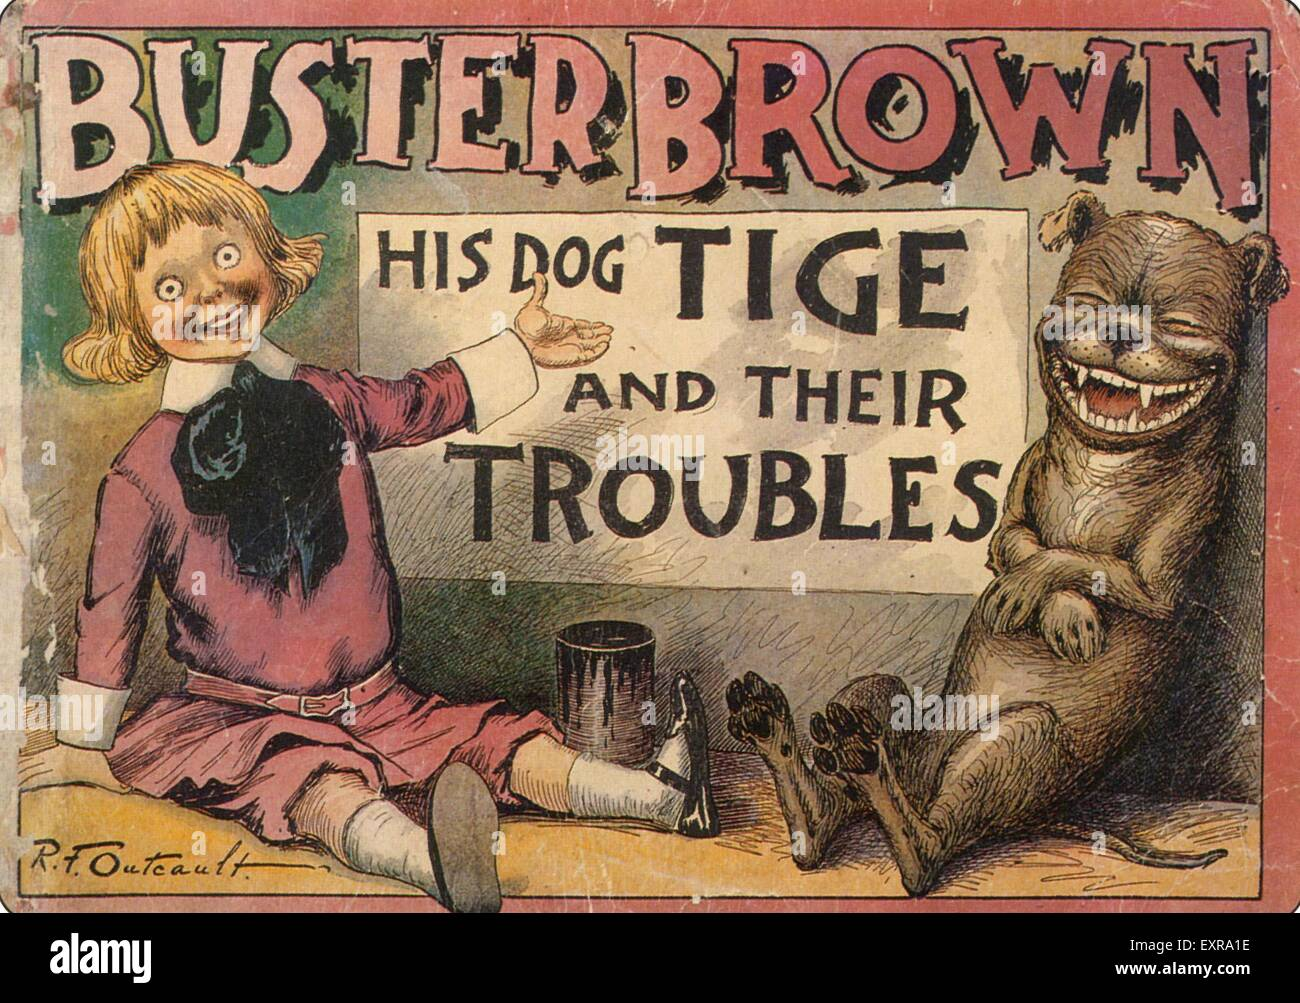 1890s USA Buster Brown Magazine Advert - Stock Image